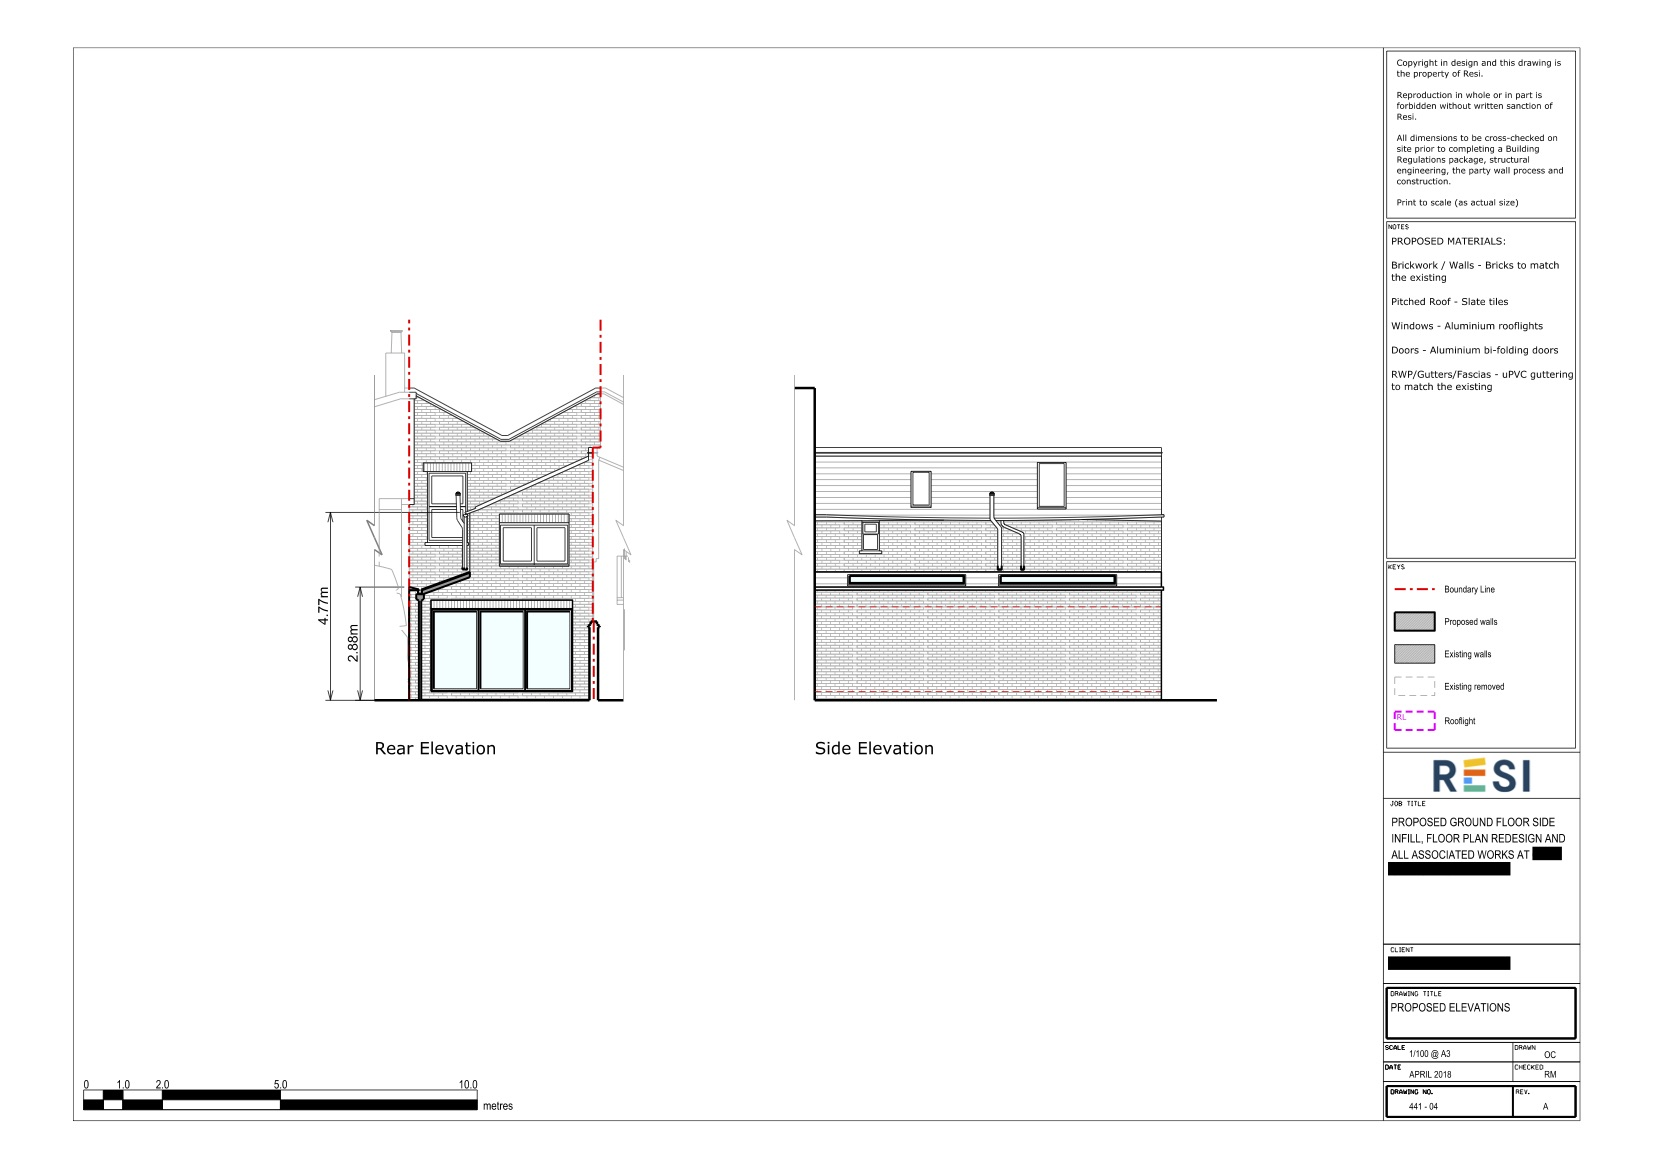 Architectural drawings rev b 2   elevations